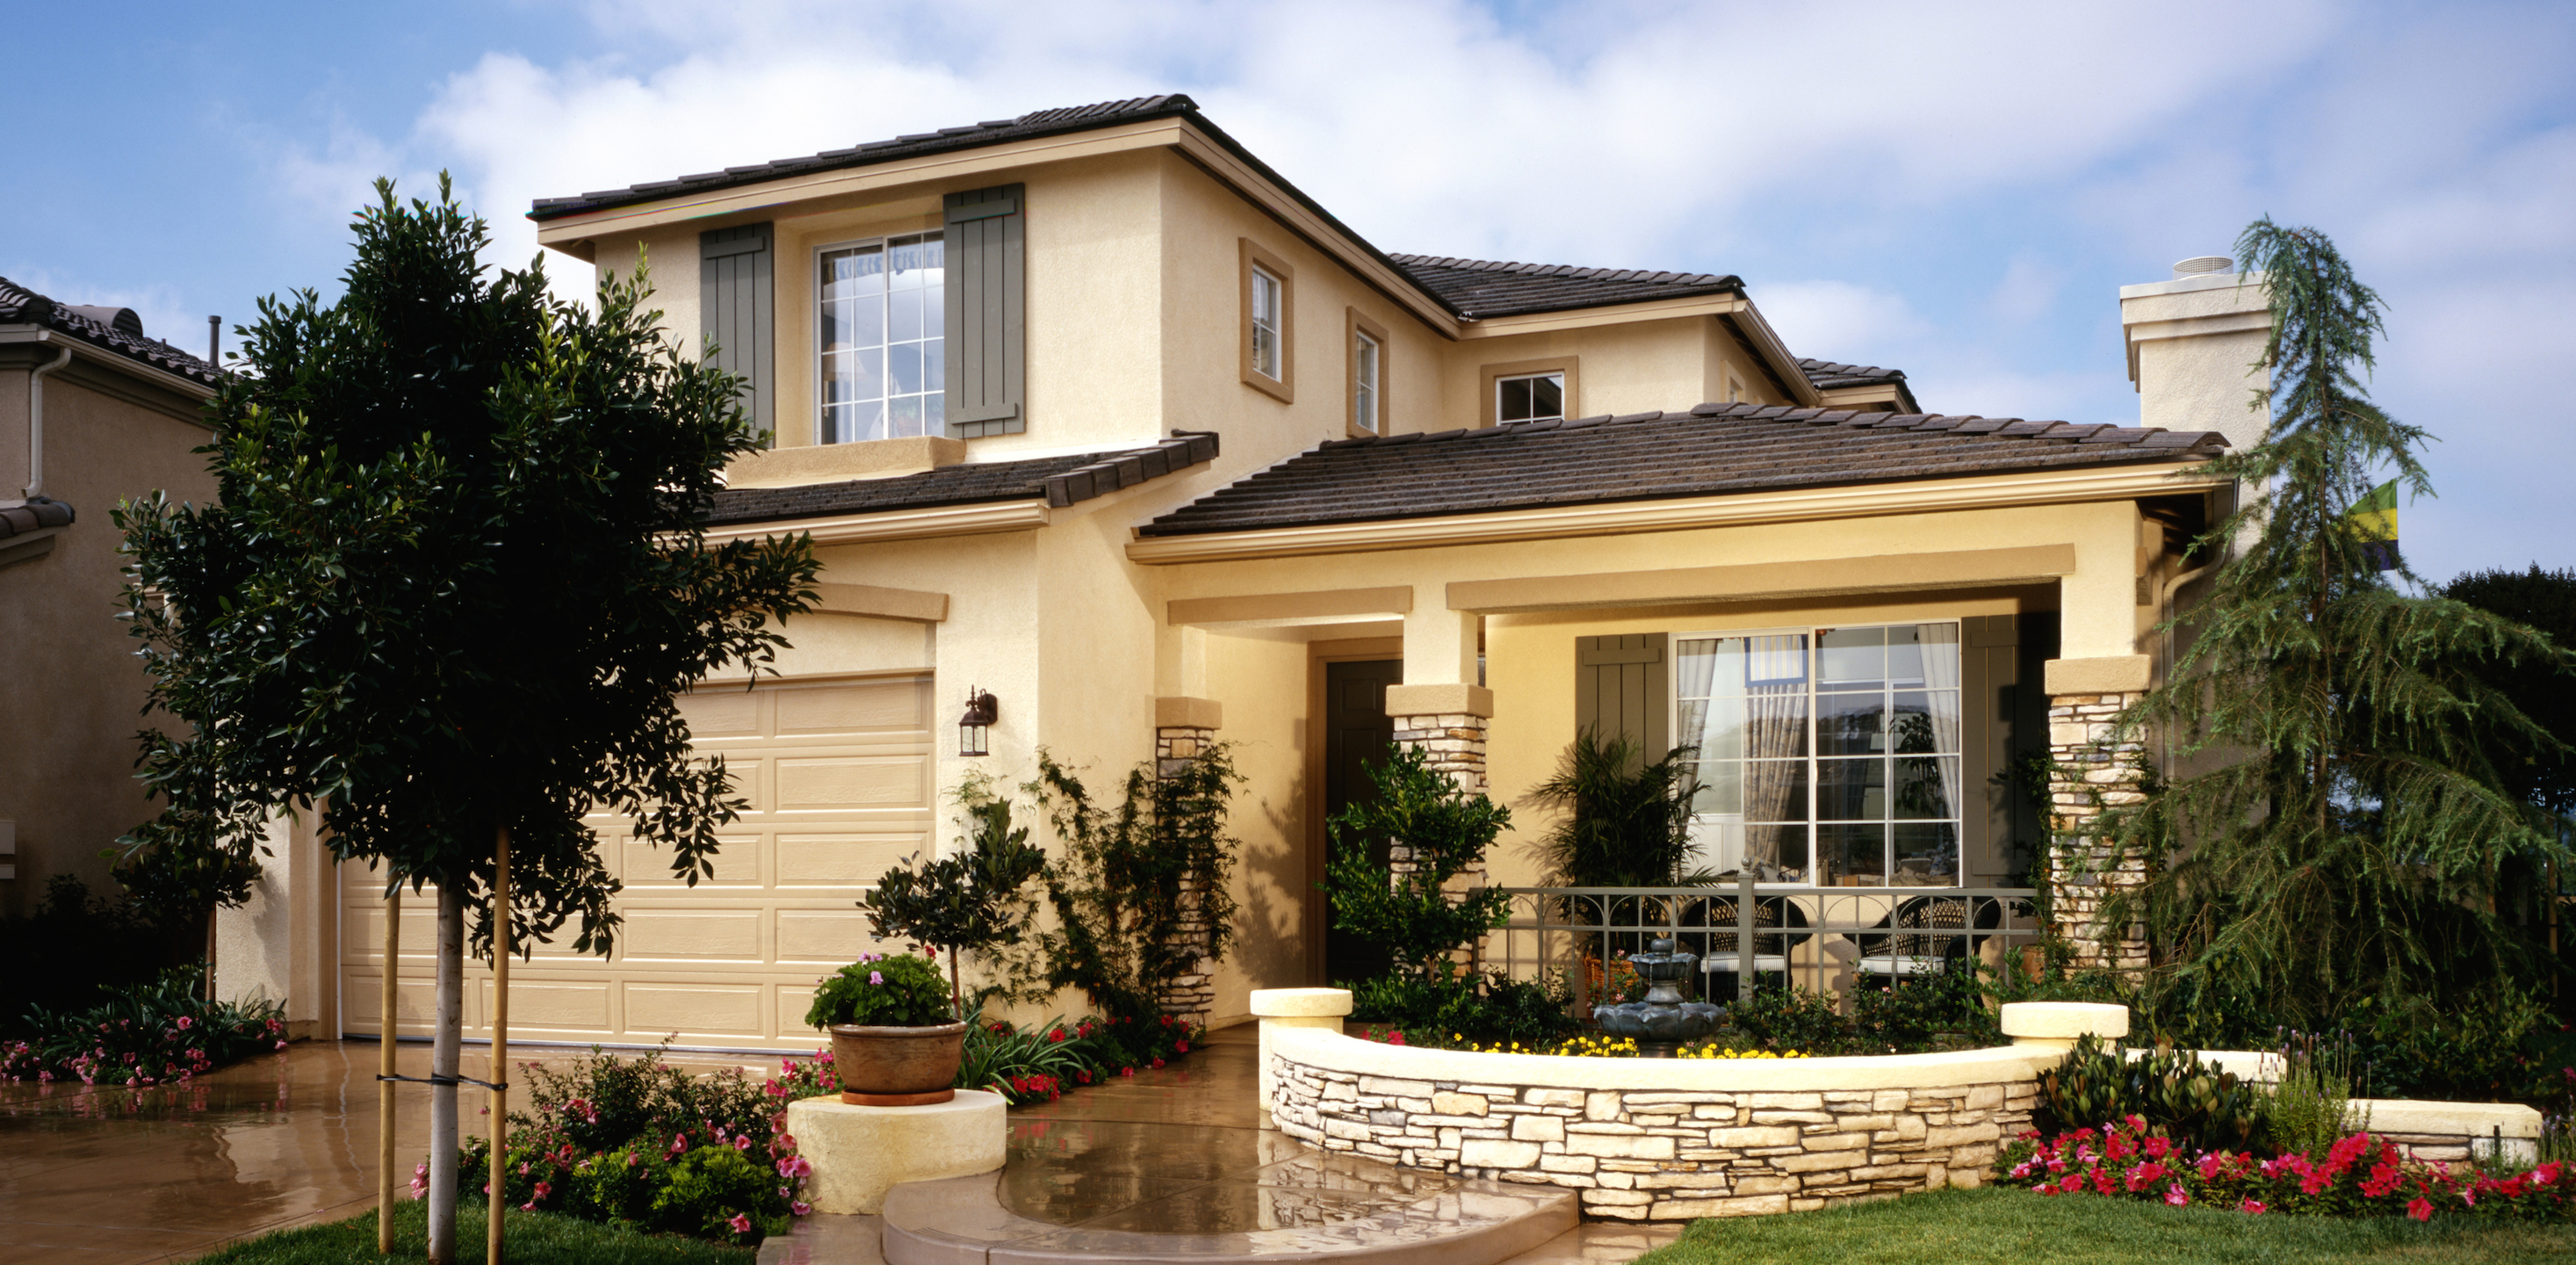 Rancho cucamonga real estate search all upland homes and for Landscape rock upland ca